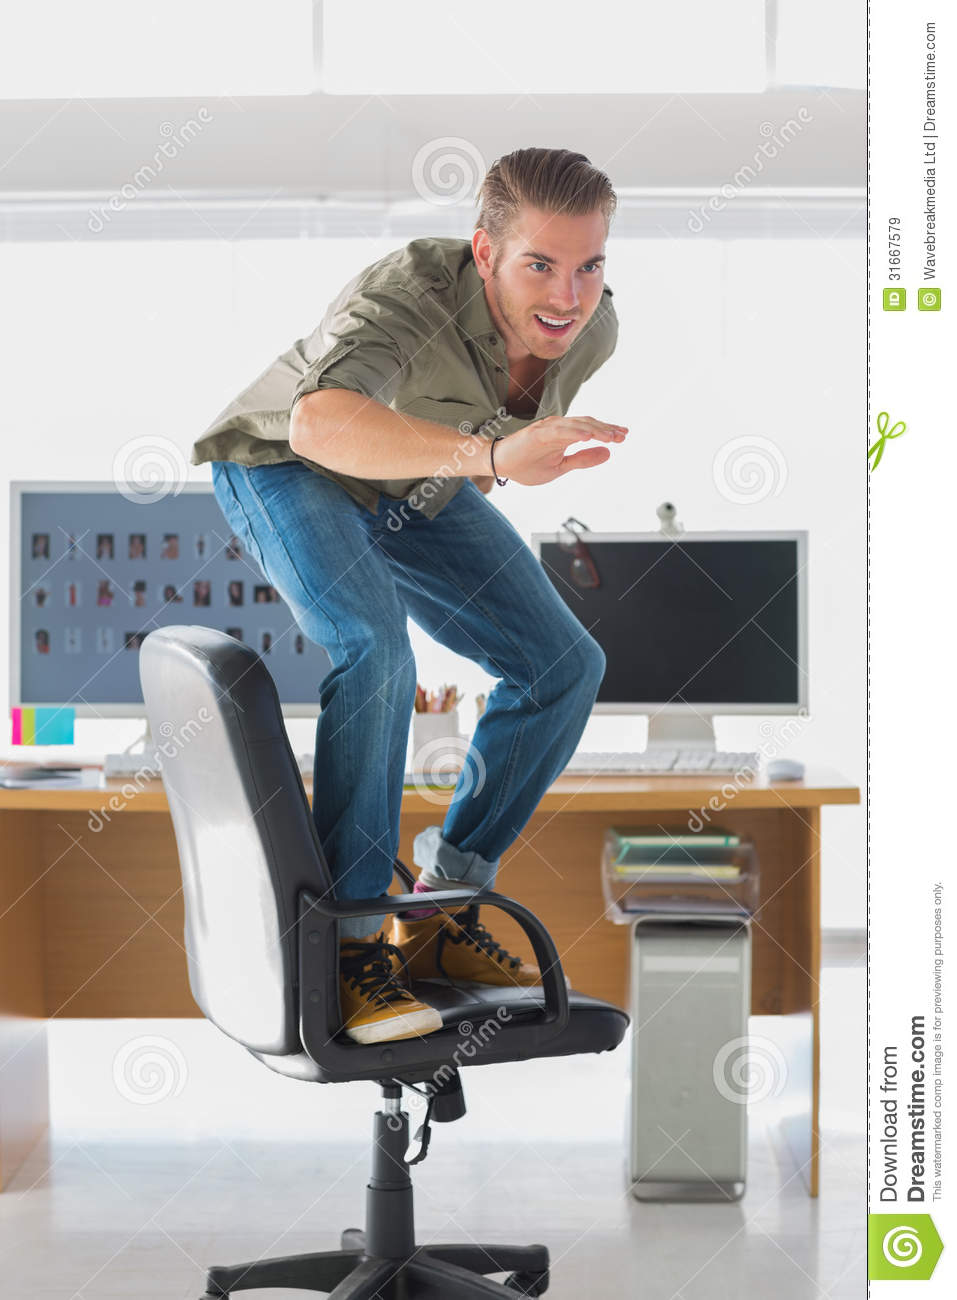 handsome man surfing his office chair royalty free stock